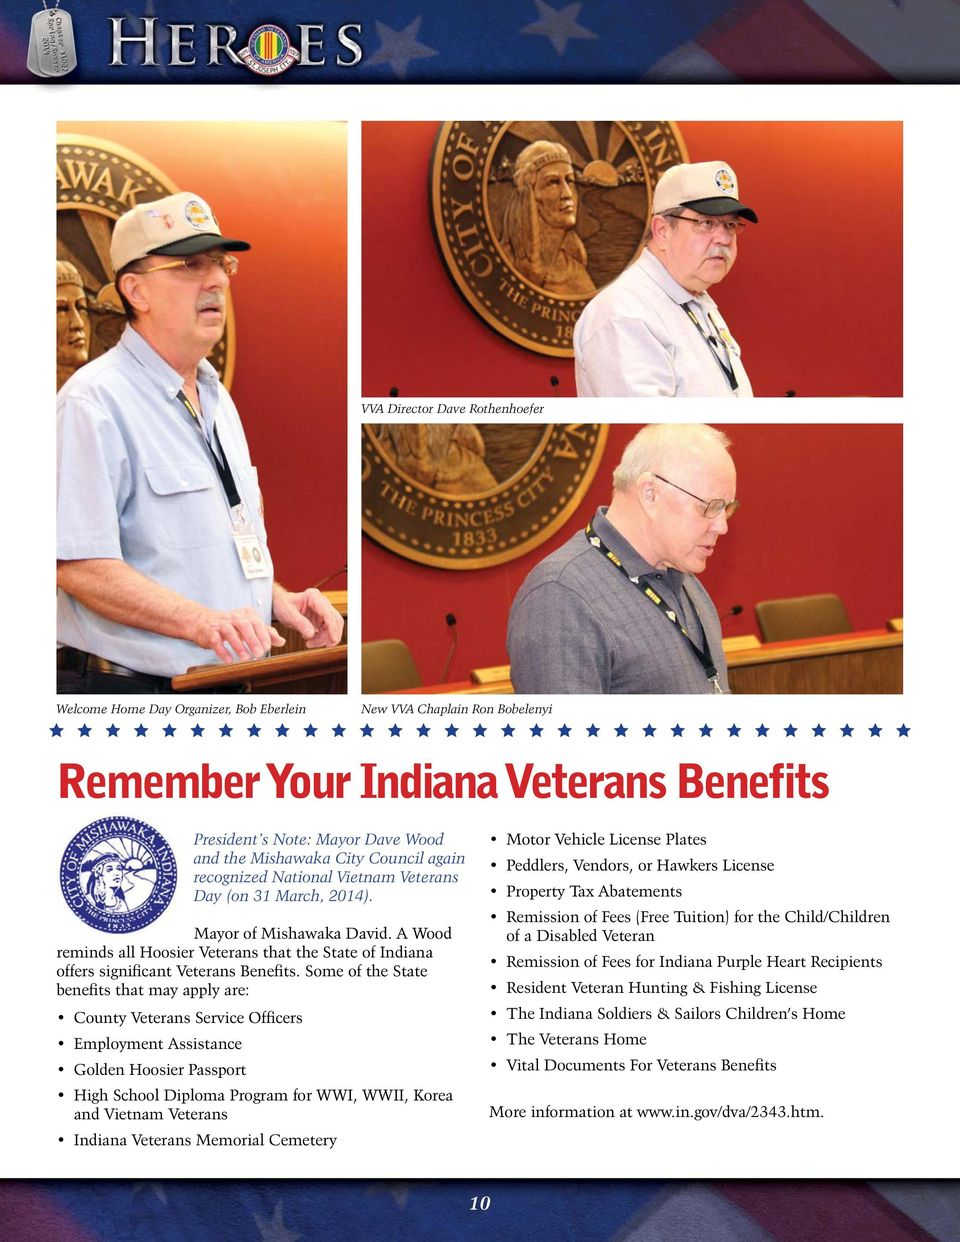 A Wood reminds all Hoosier Veterans that the State of Indiana offers significant Veterans Benefits.